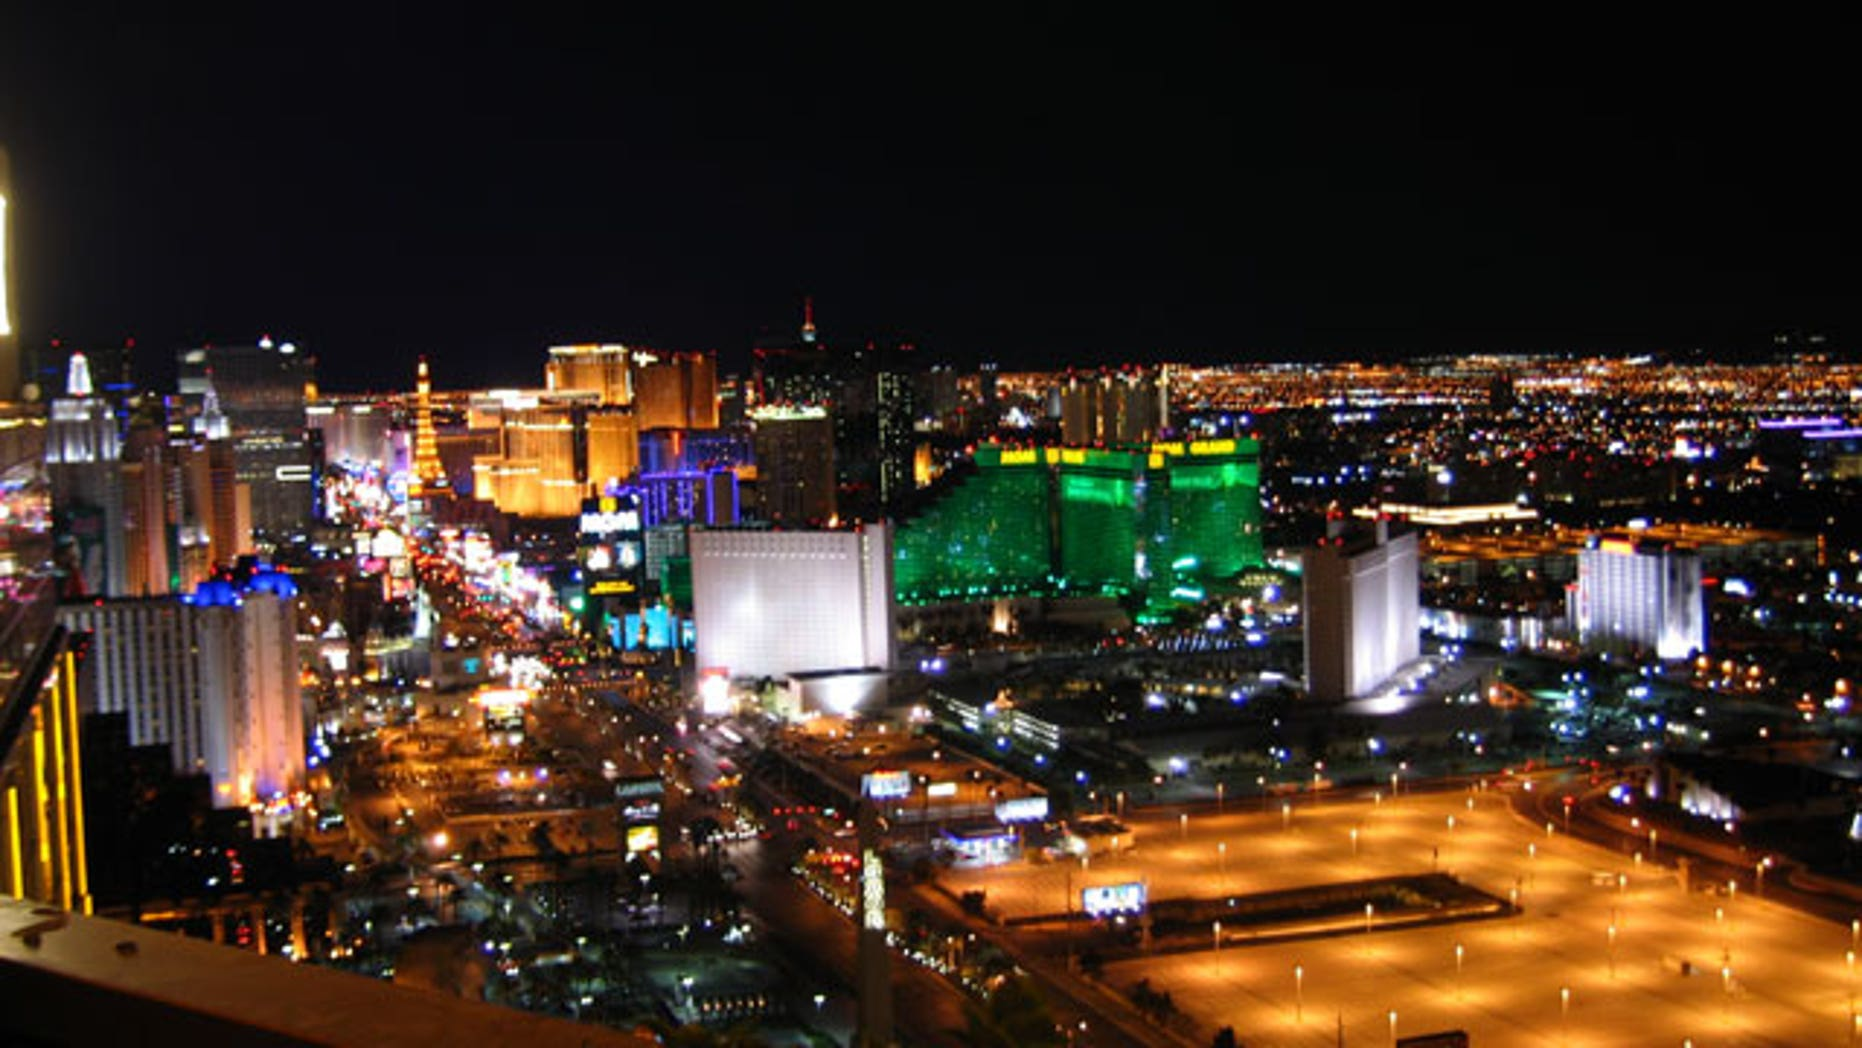 January, 8, 2012: The view from the 43rd floor balcony at the House of Blues Foundation Room in Las Vegas, where nearly two dozen companies showed off their stuff prior to the official beginning of the 2012 Consumer Electronics Show.